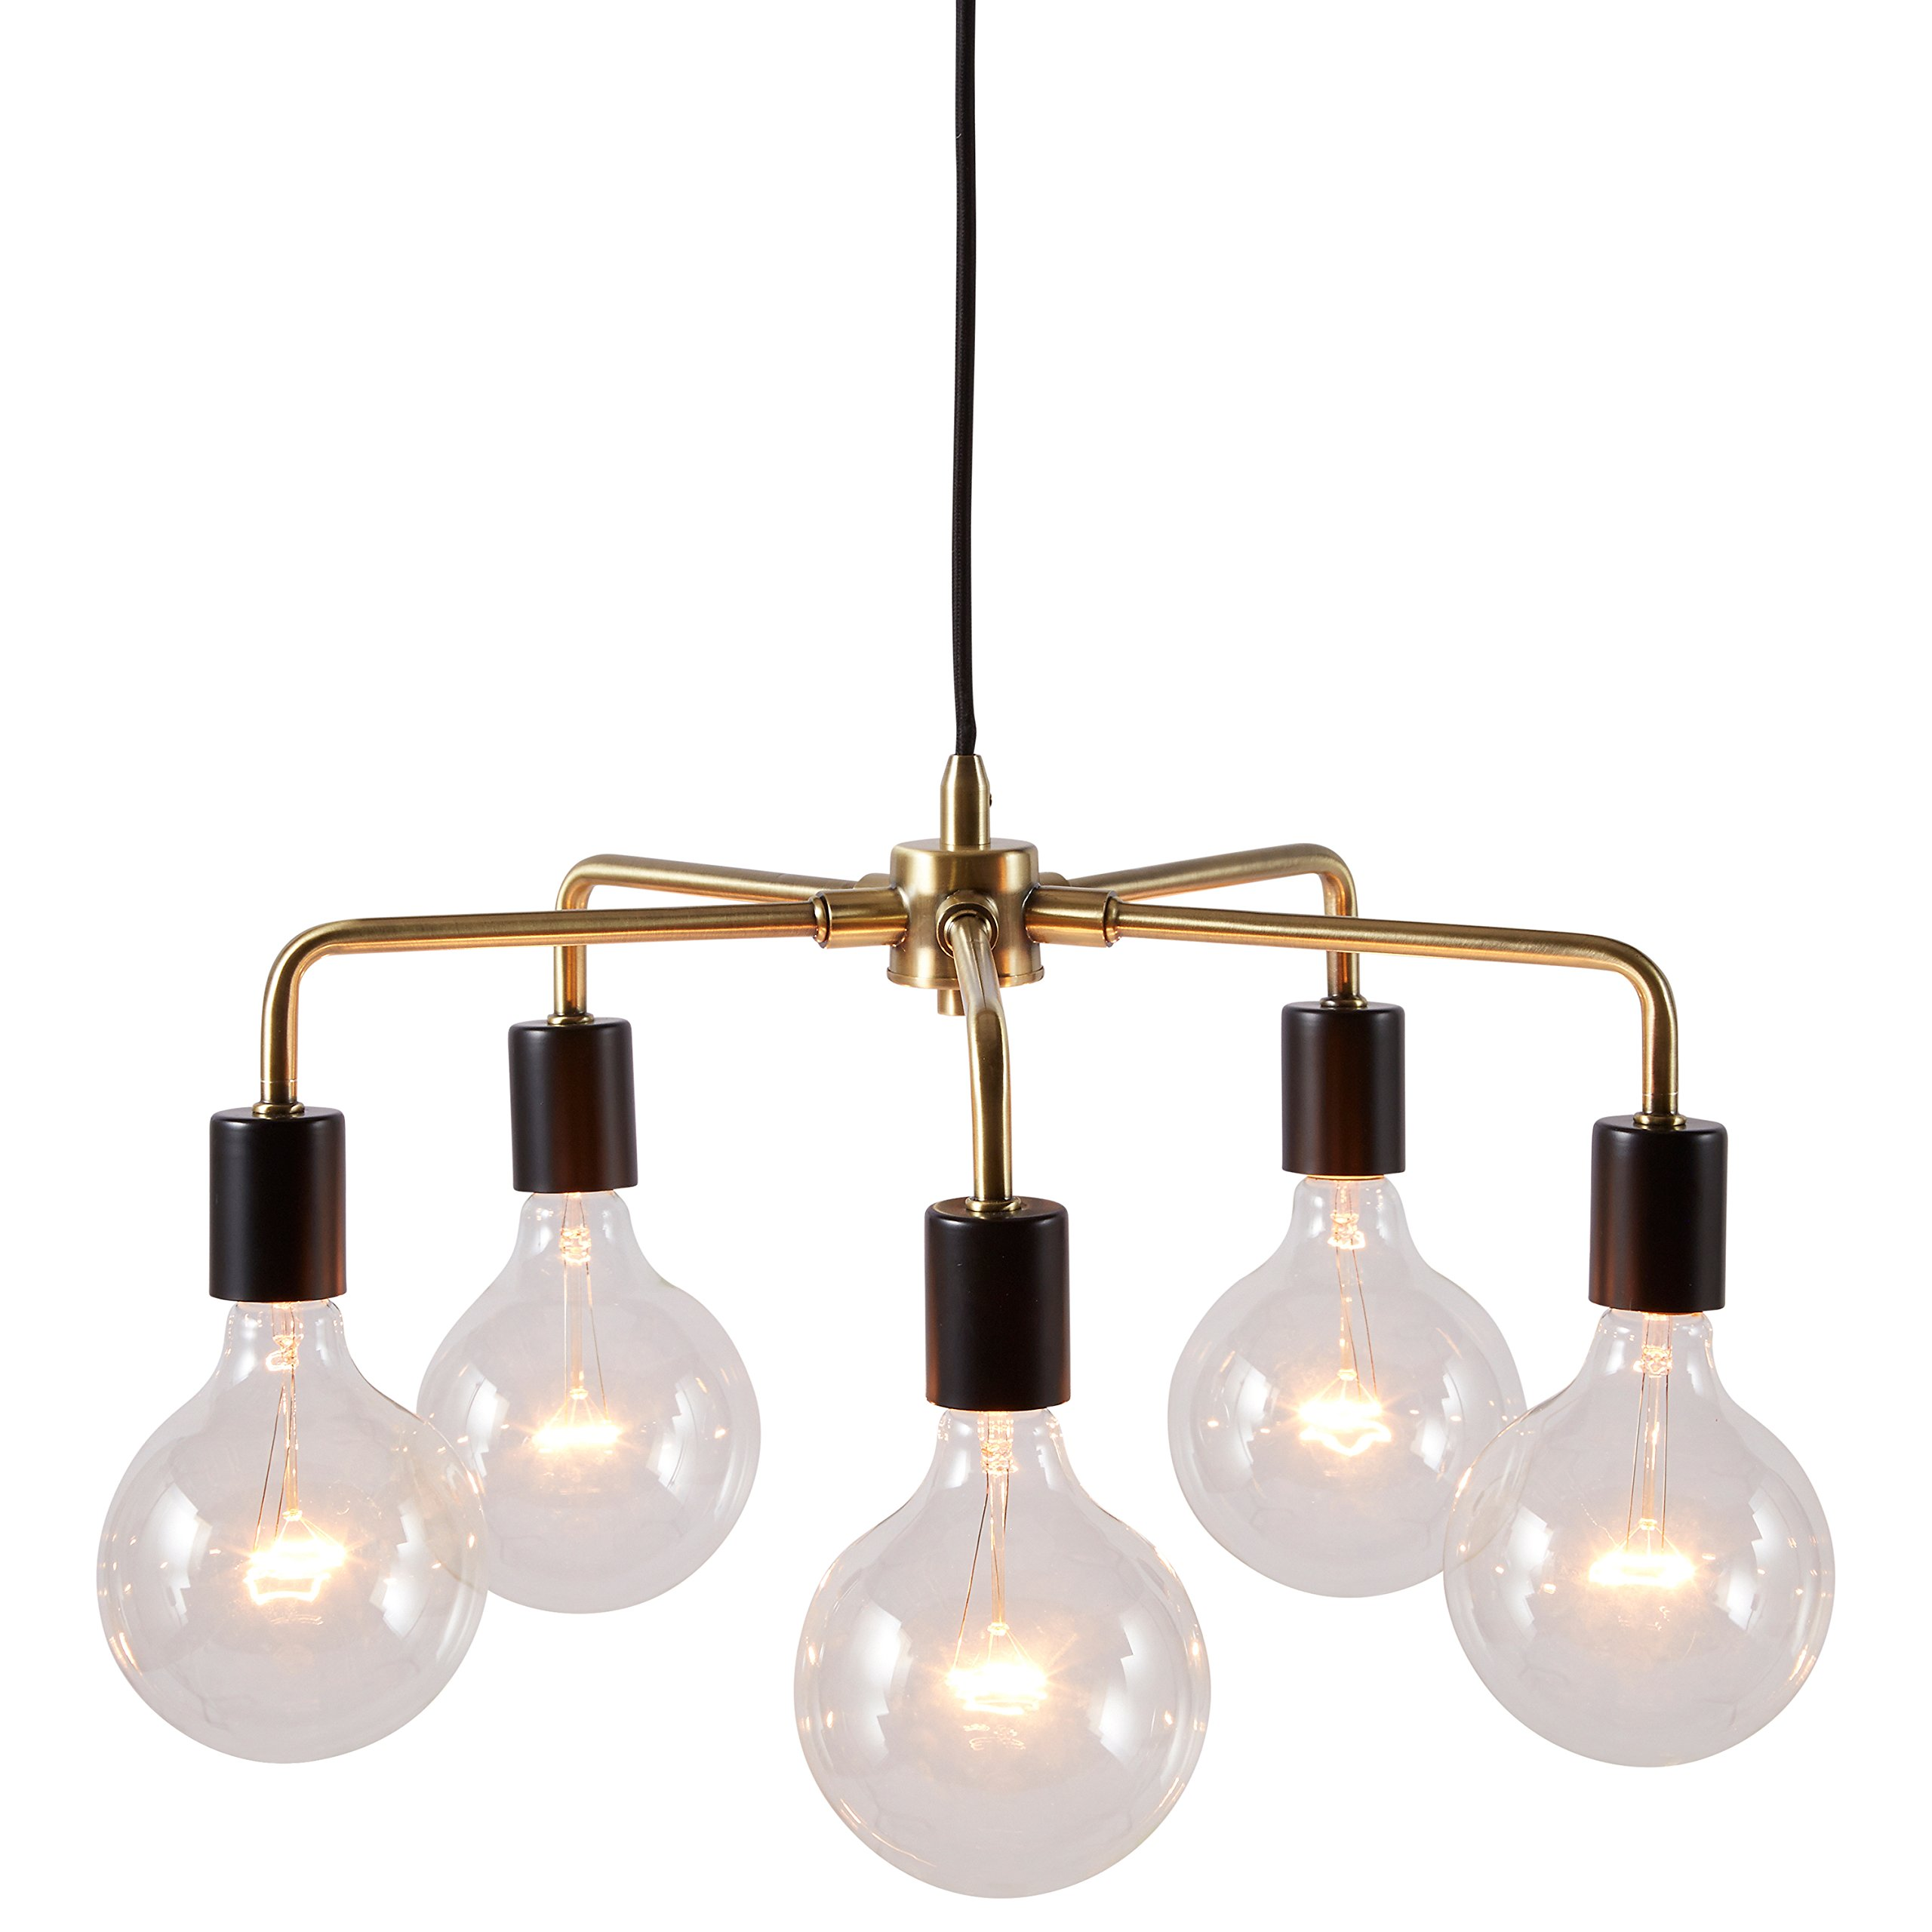 Rivet 5-Arm Industrial Pendant Chandelier, 36''H, With Bulbs, Black and Brass Finish